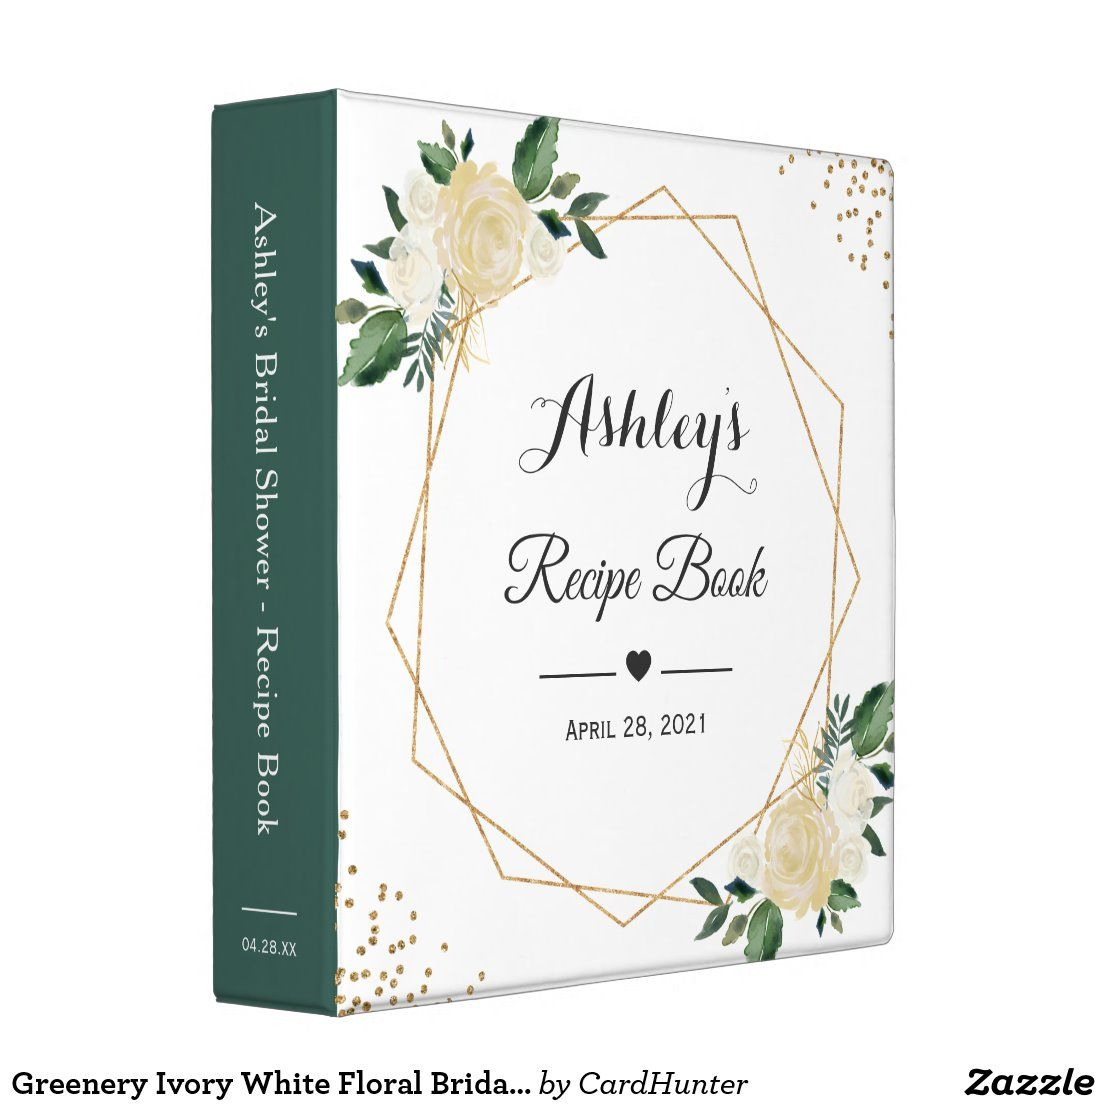 Greenery Ivory White Floral Bridal Shower Recipe 3 Ring